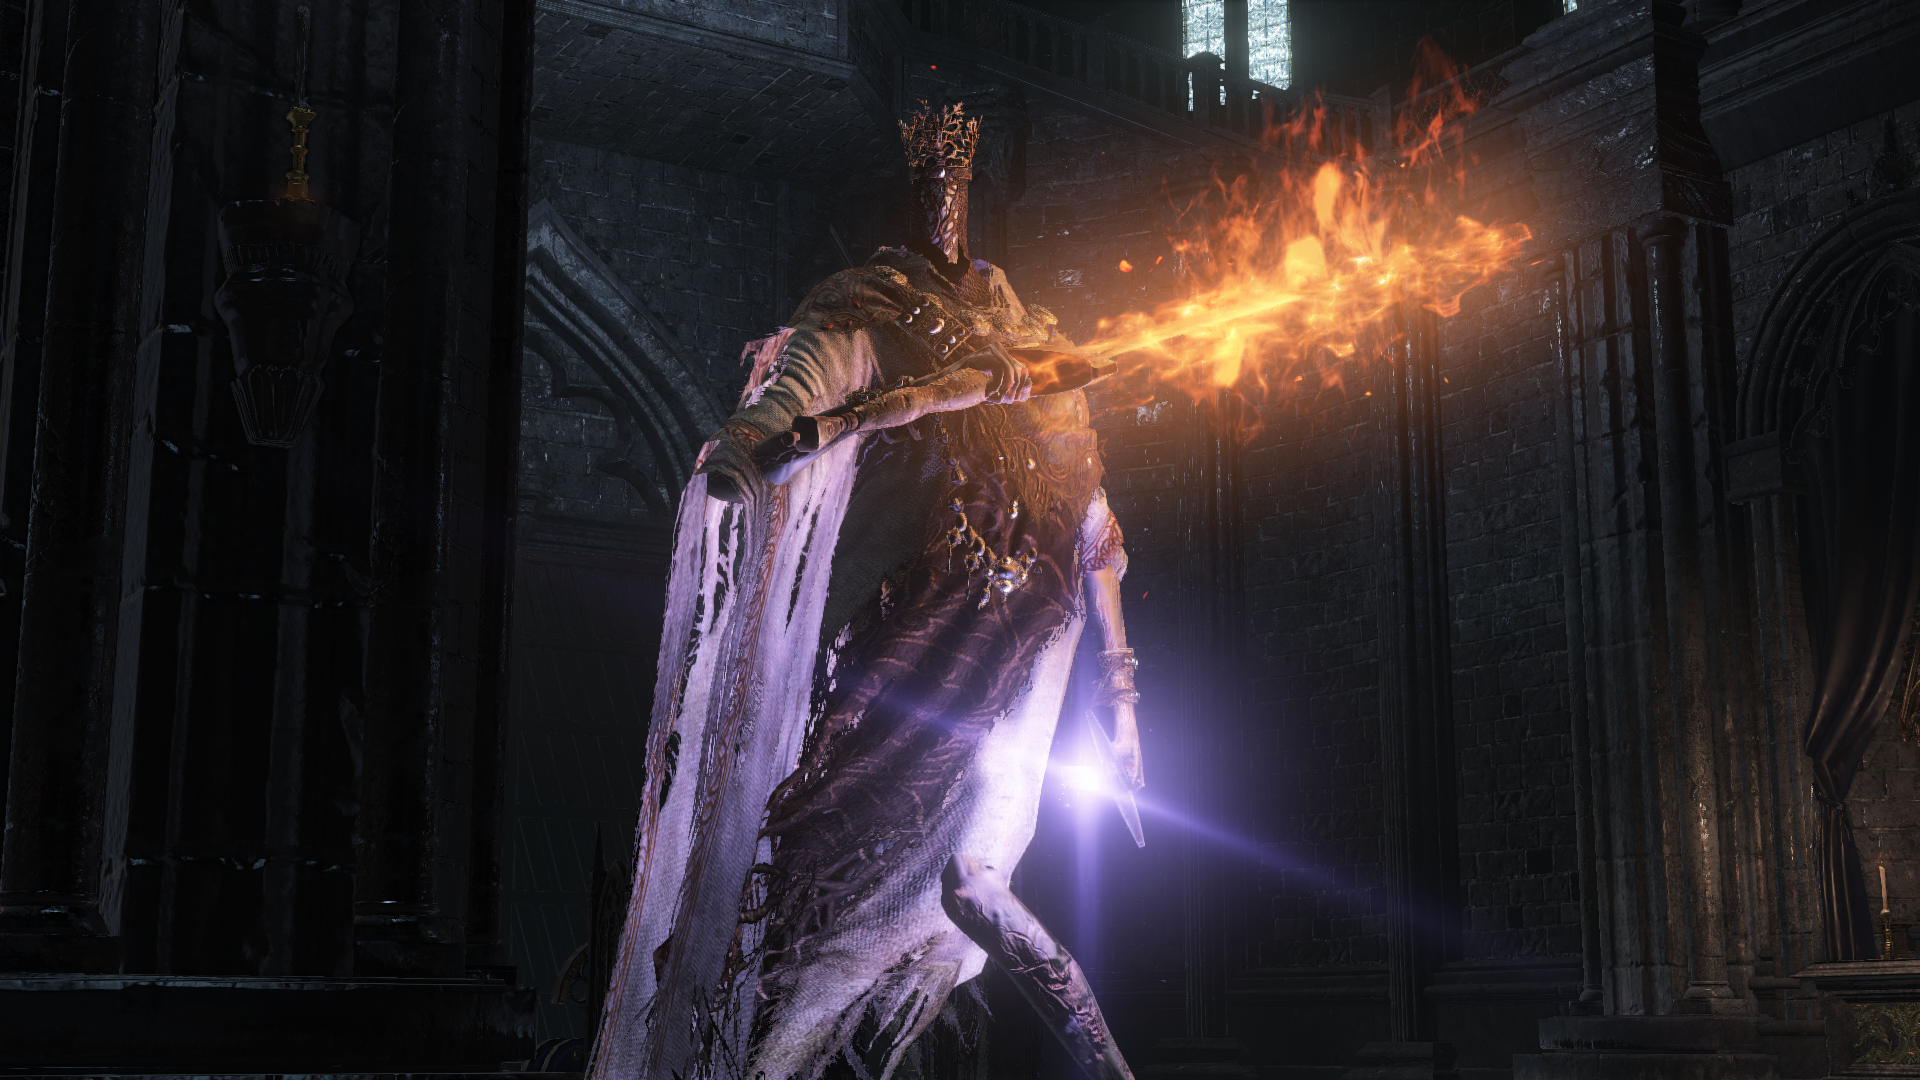 Pontif Sulyvahn boss fight in Dark Souls III